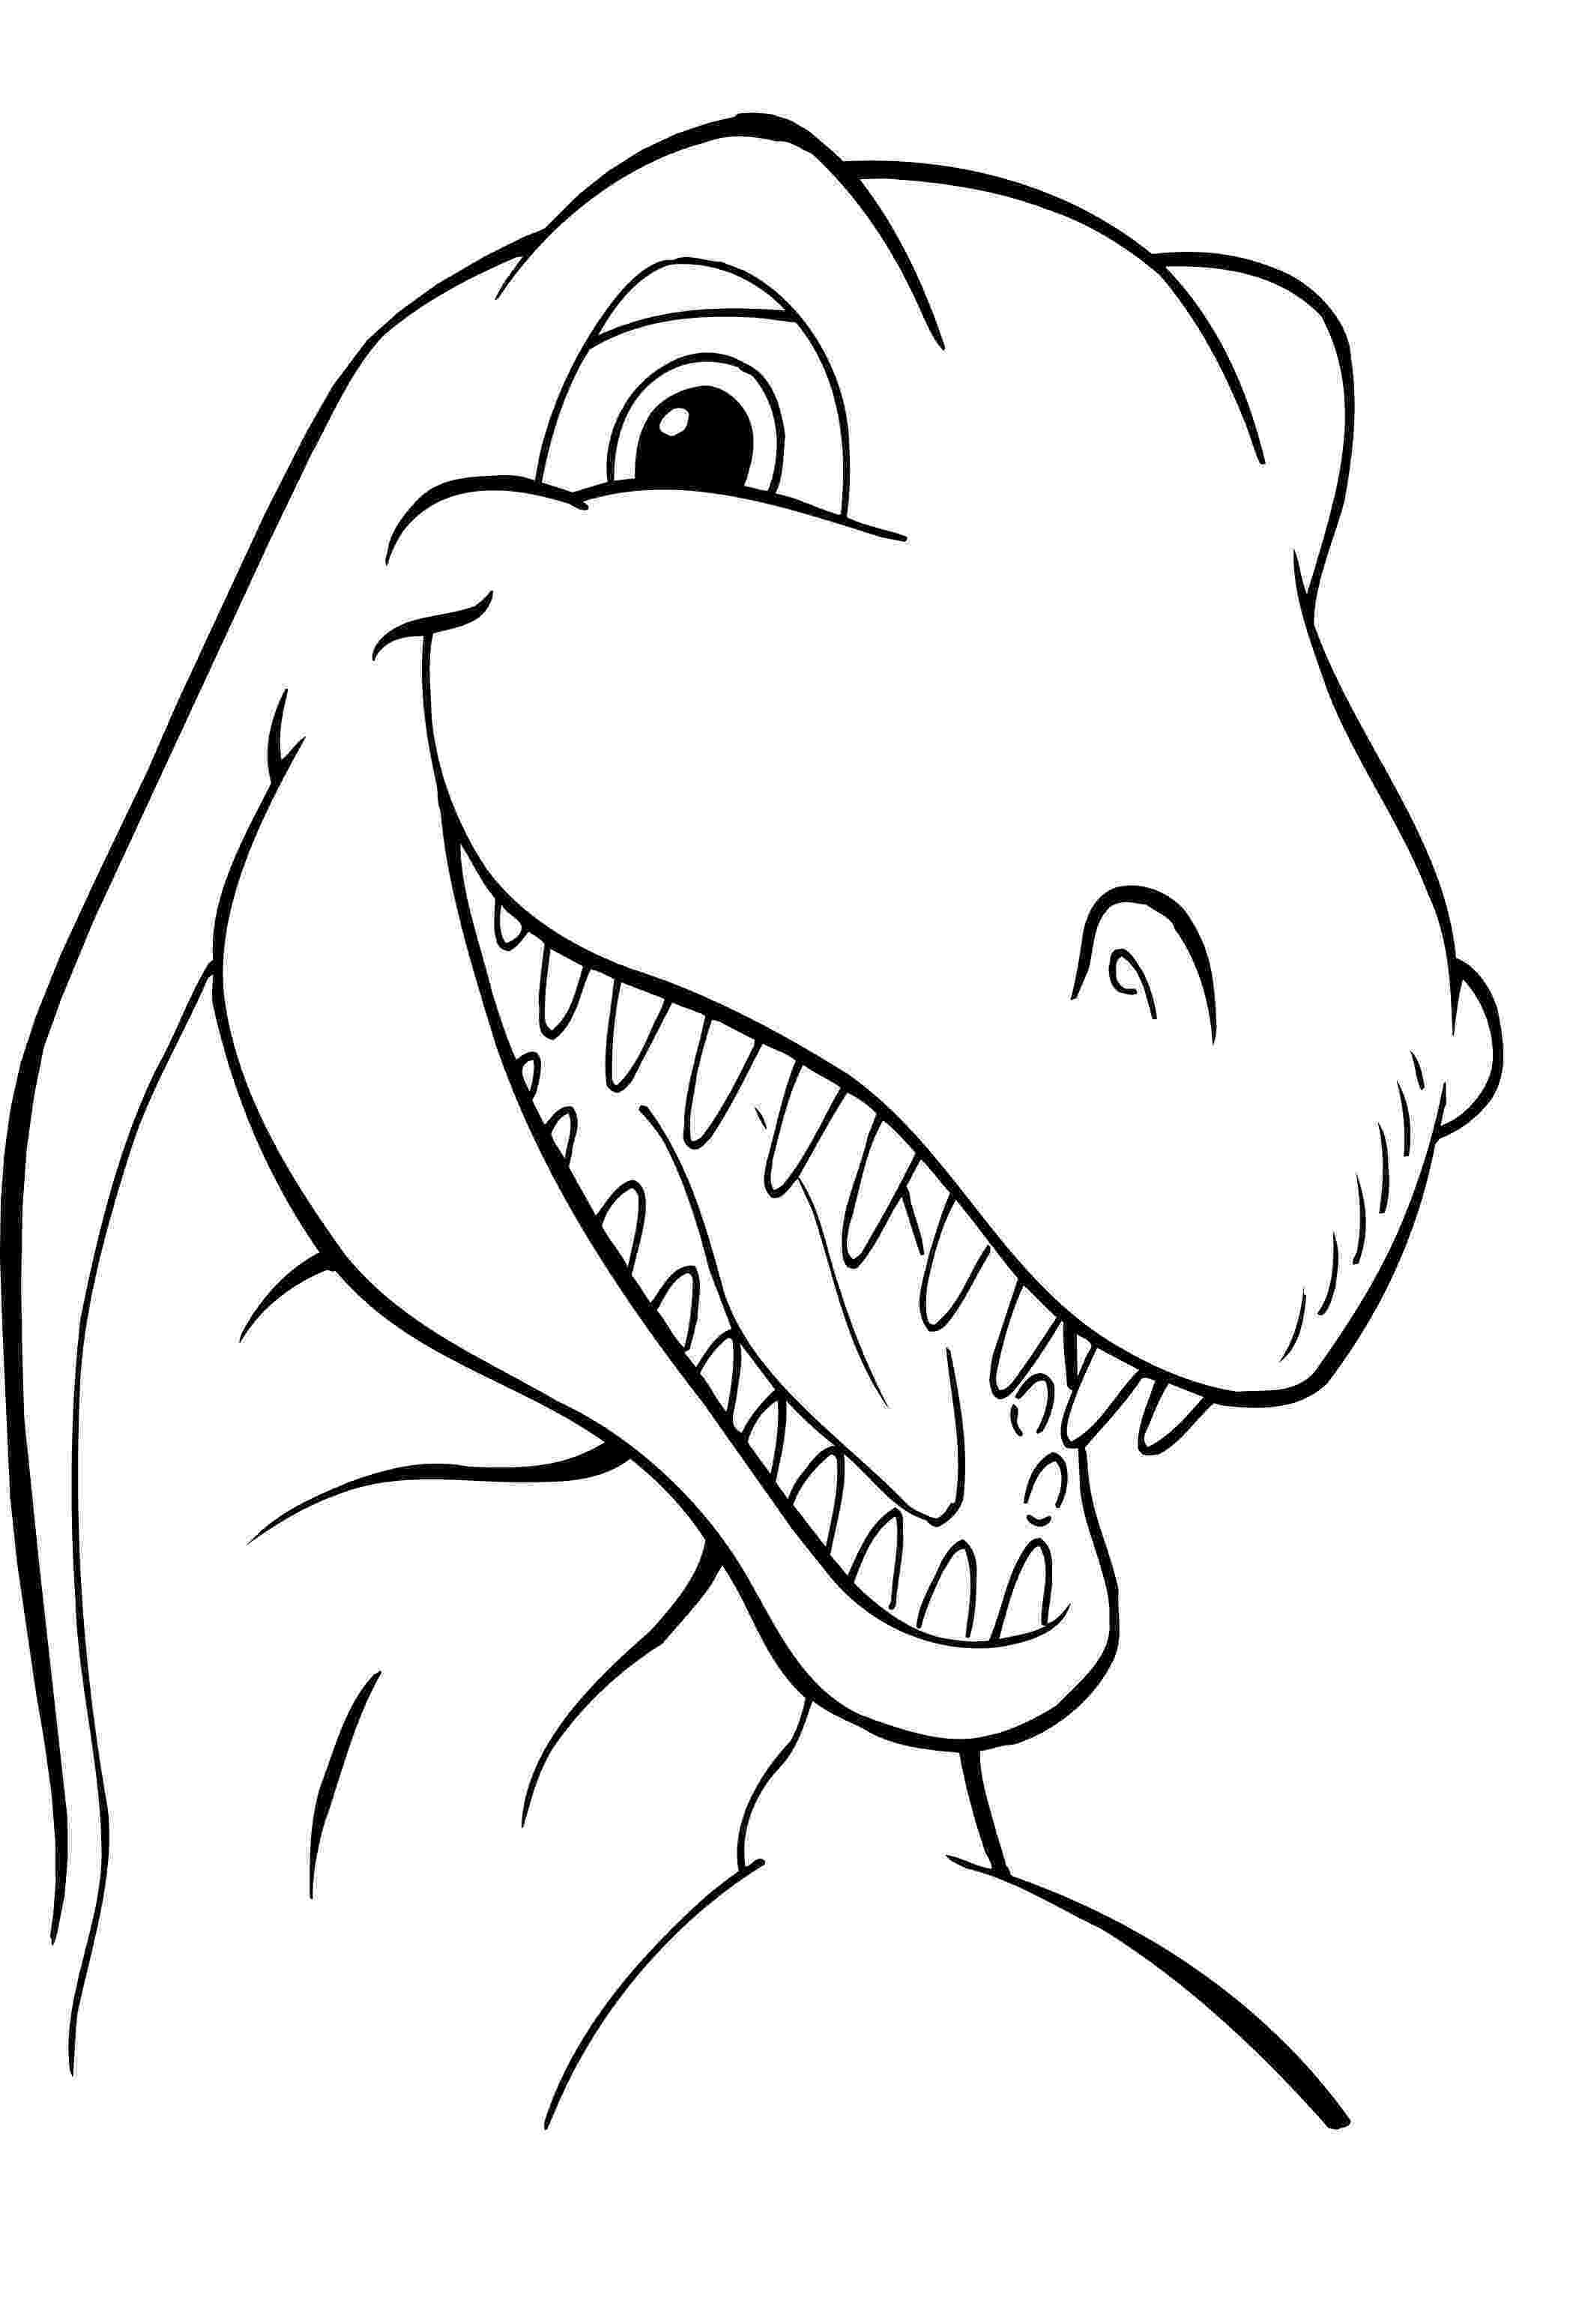 colouring pages dinosaurs printable dinosaurs coloring pages printable minister coloring pages dinosaurs printable colouring